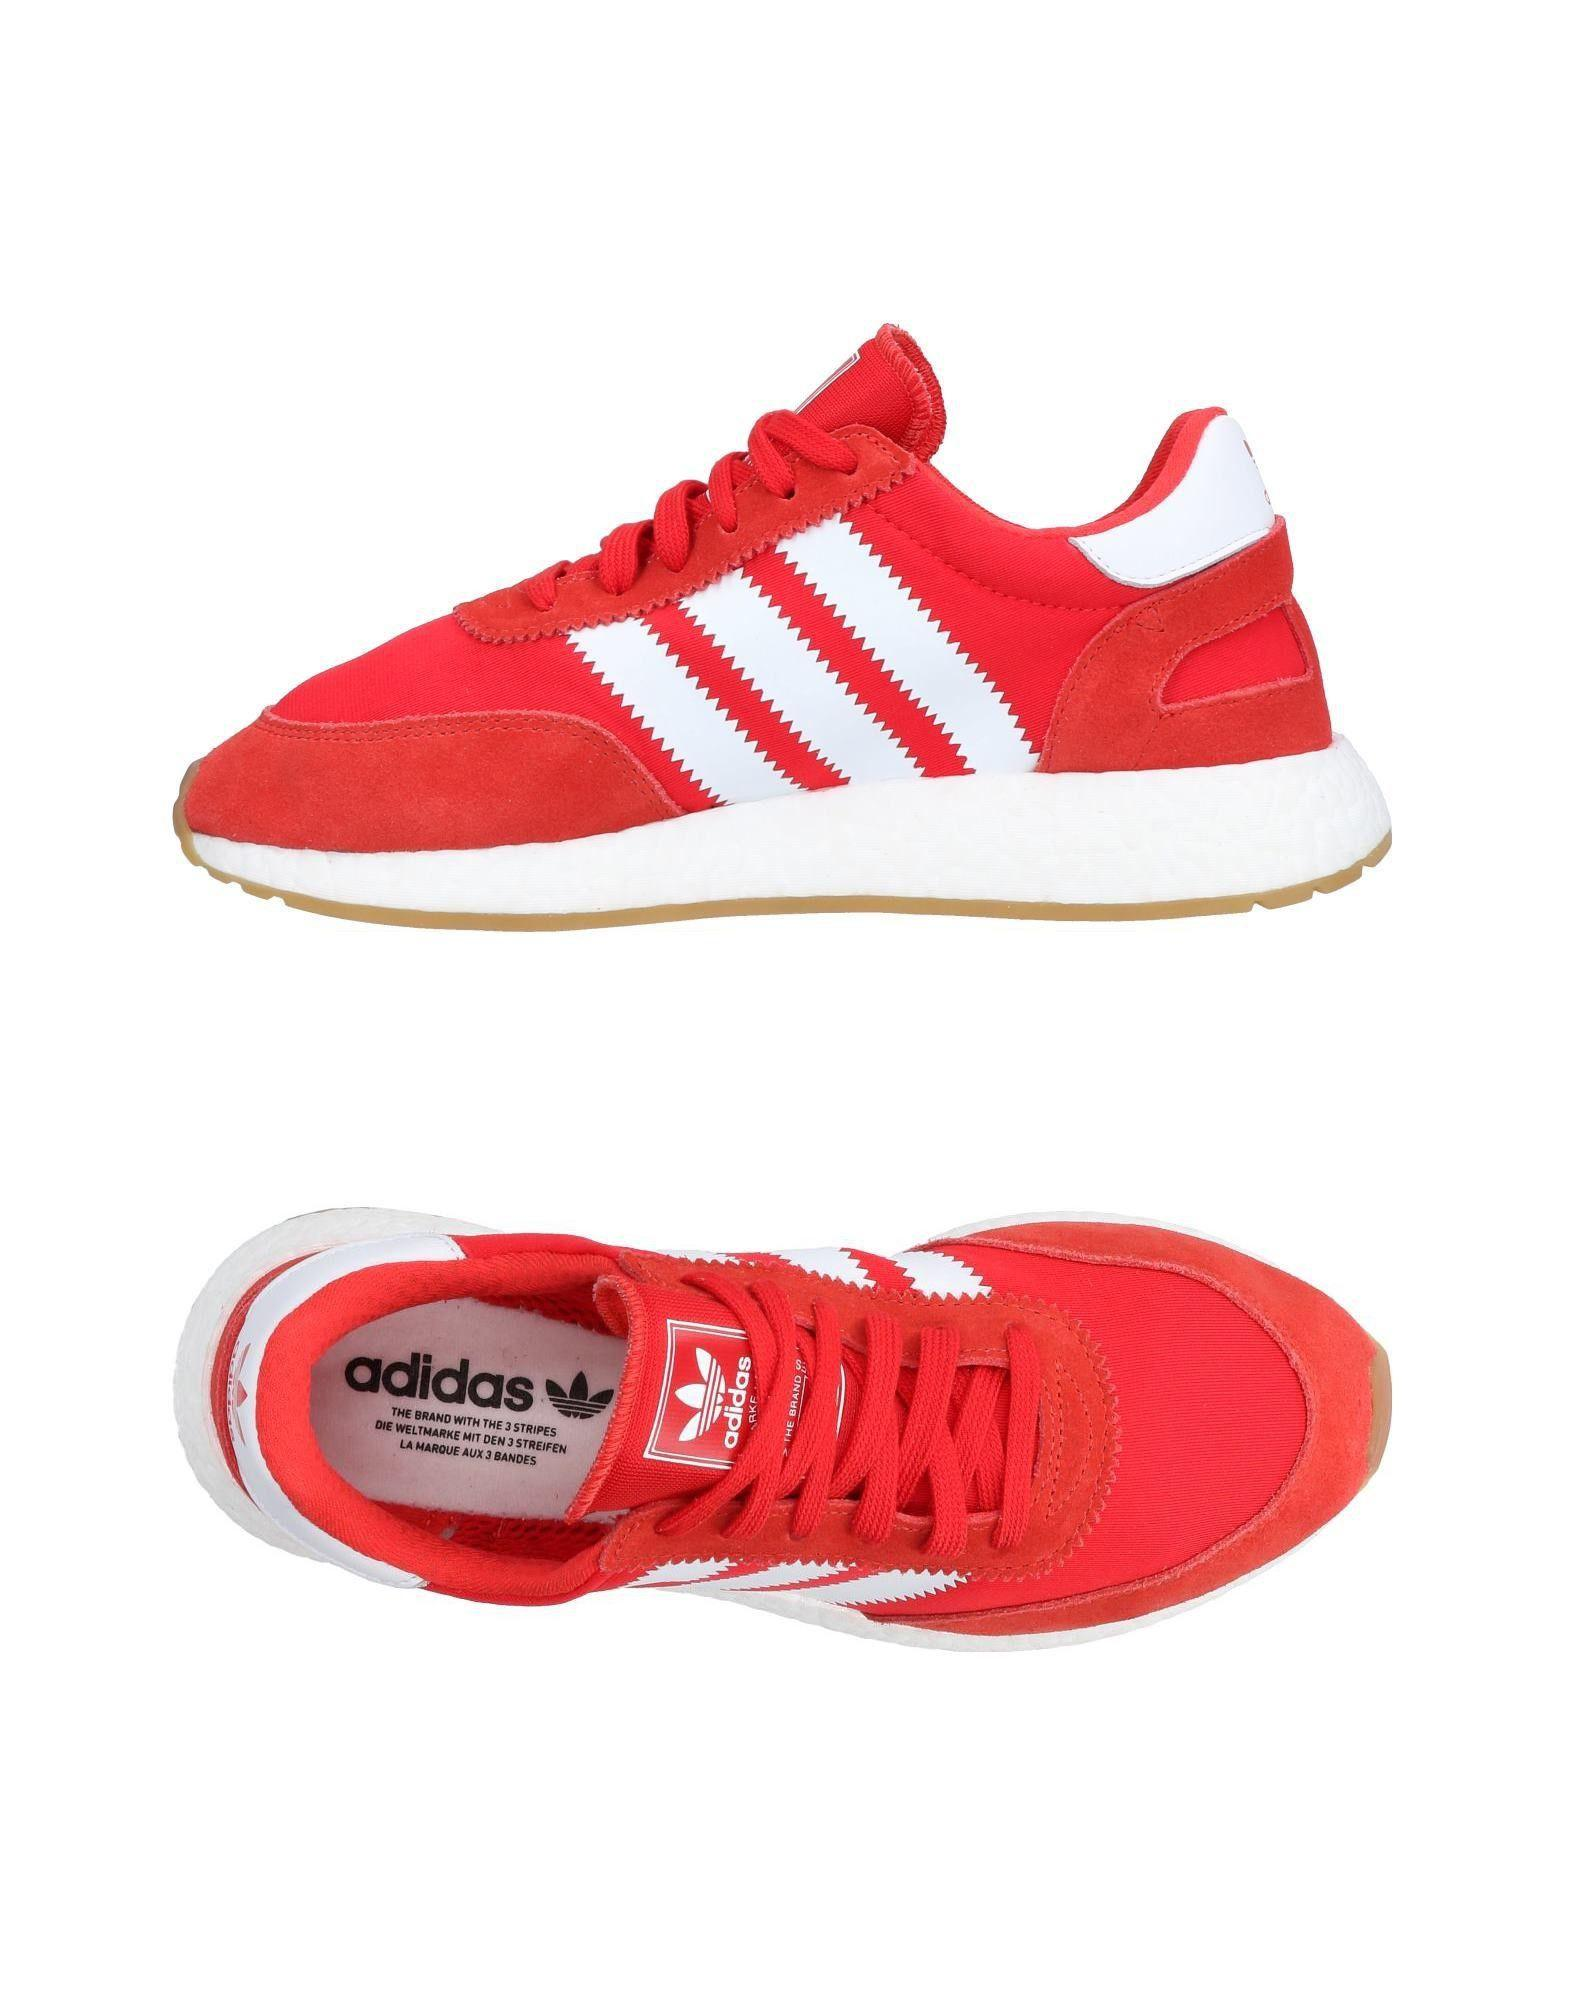 Adidas Originals Sneakers In Red